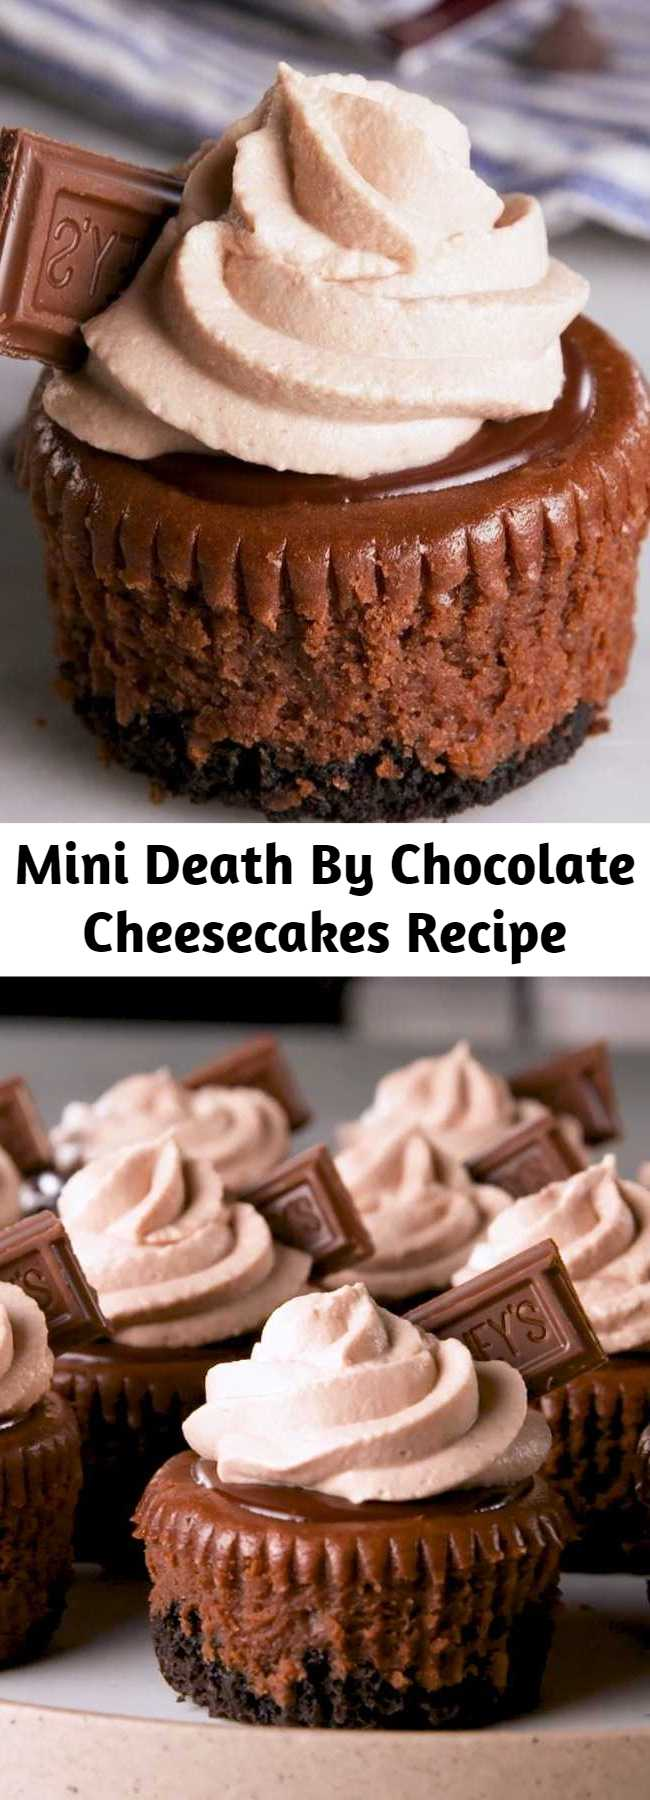 Mini Death By Chocolate Cheesecakes Recipe - Mini cheesecakes are the best way to get a party started...or rather, the best way to end one. Either way, death by chocolate is always the best of the best. These cupcakes are rich and creamy, and chocolate is involved from top to bottom. They're the perfect indulgence. #easy #recipe #mini #deathbychocolate #chocolate #cheesecake #ganache #creamcheese #baked #oreos